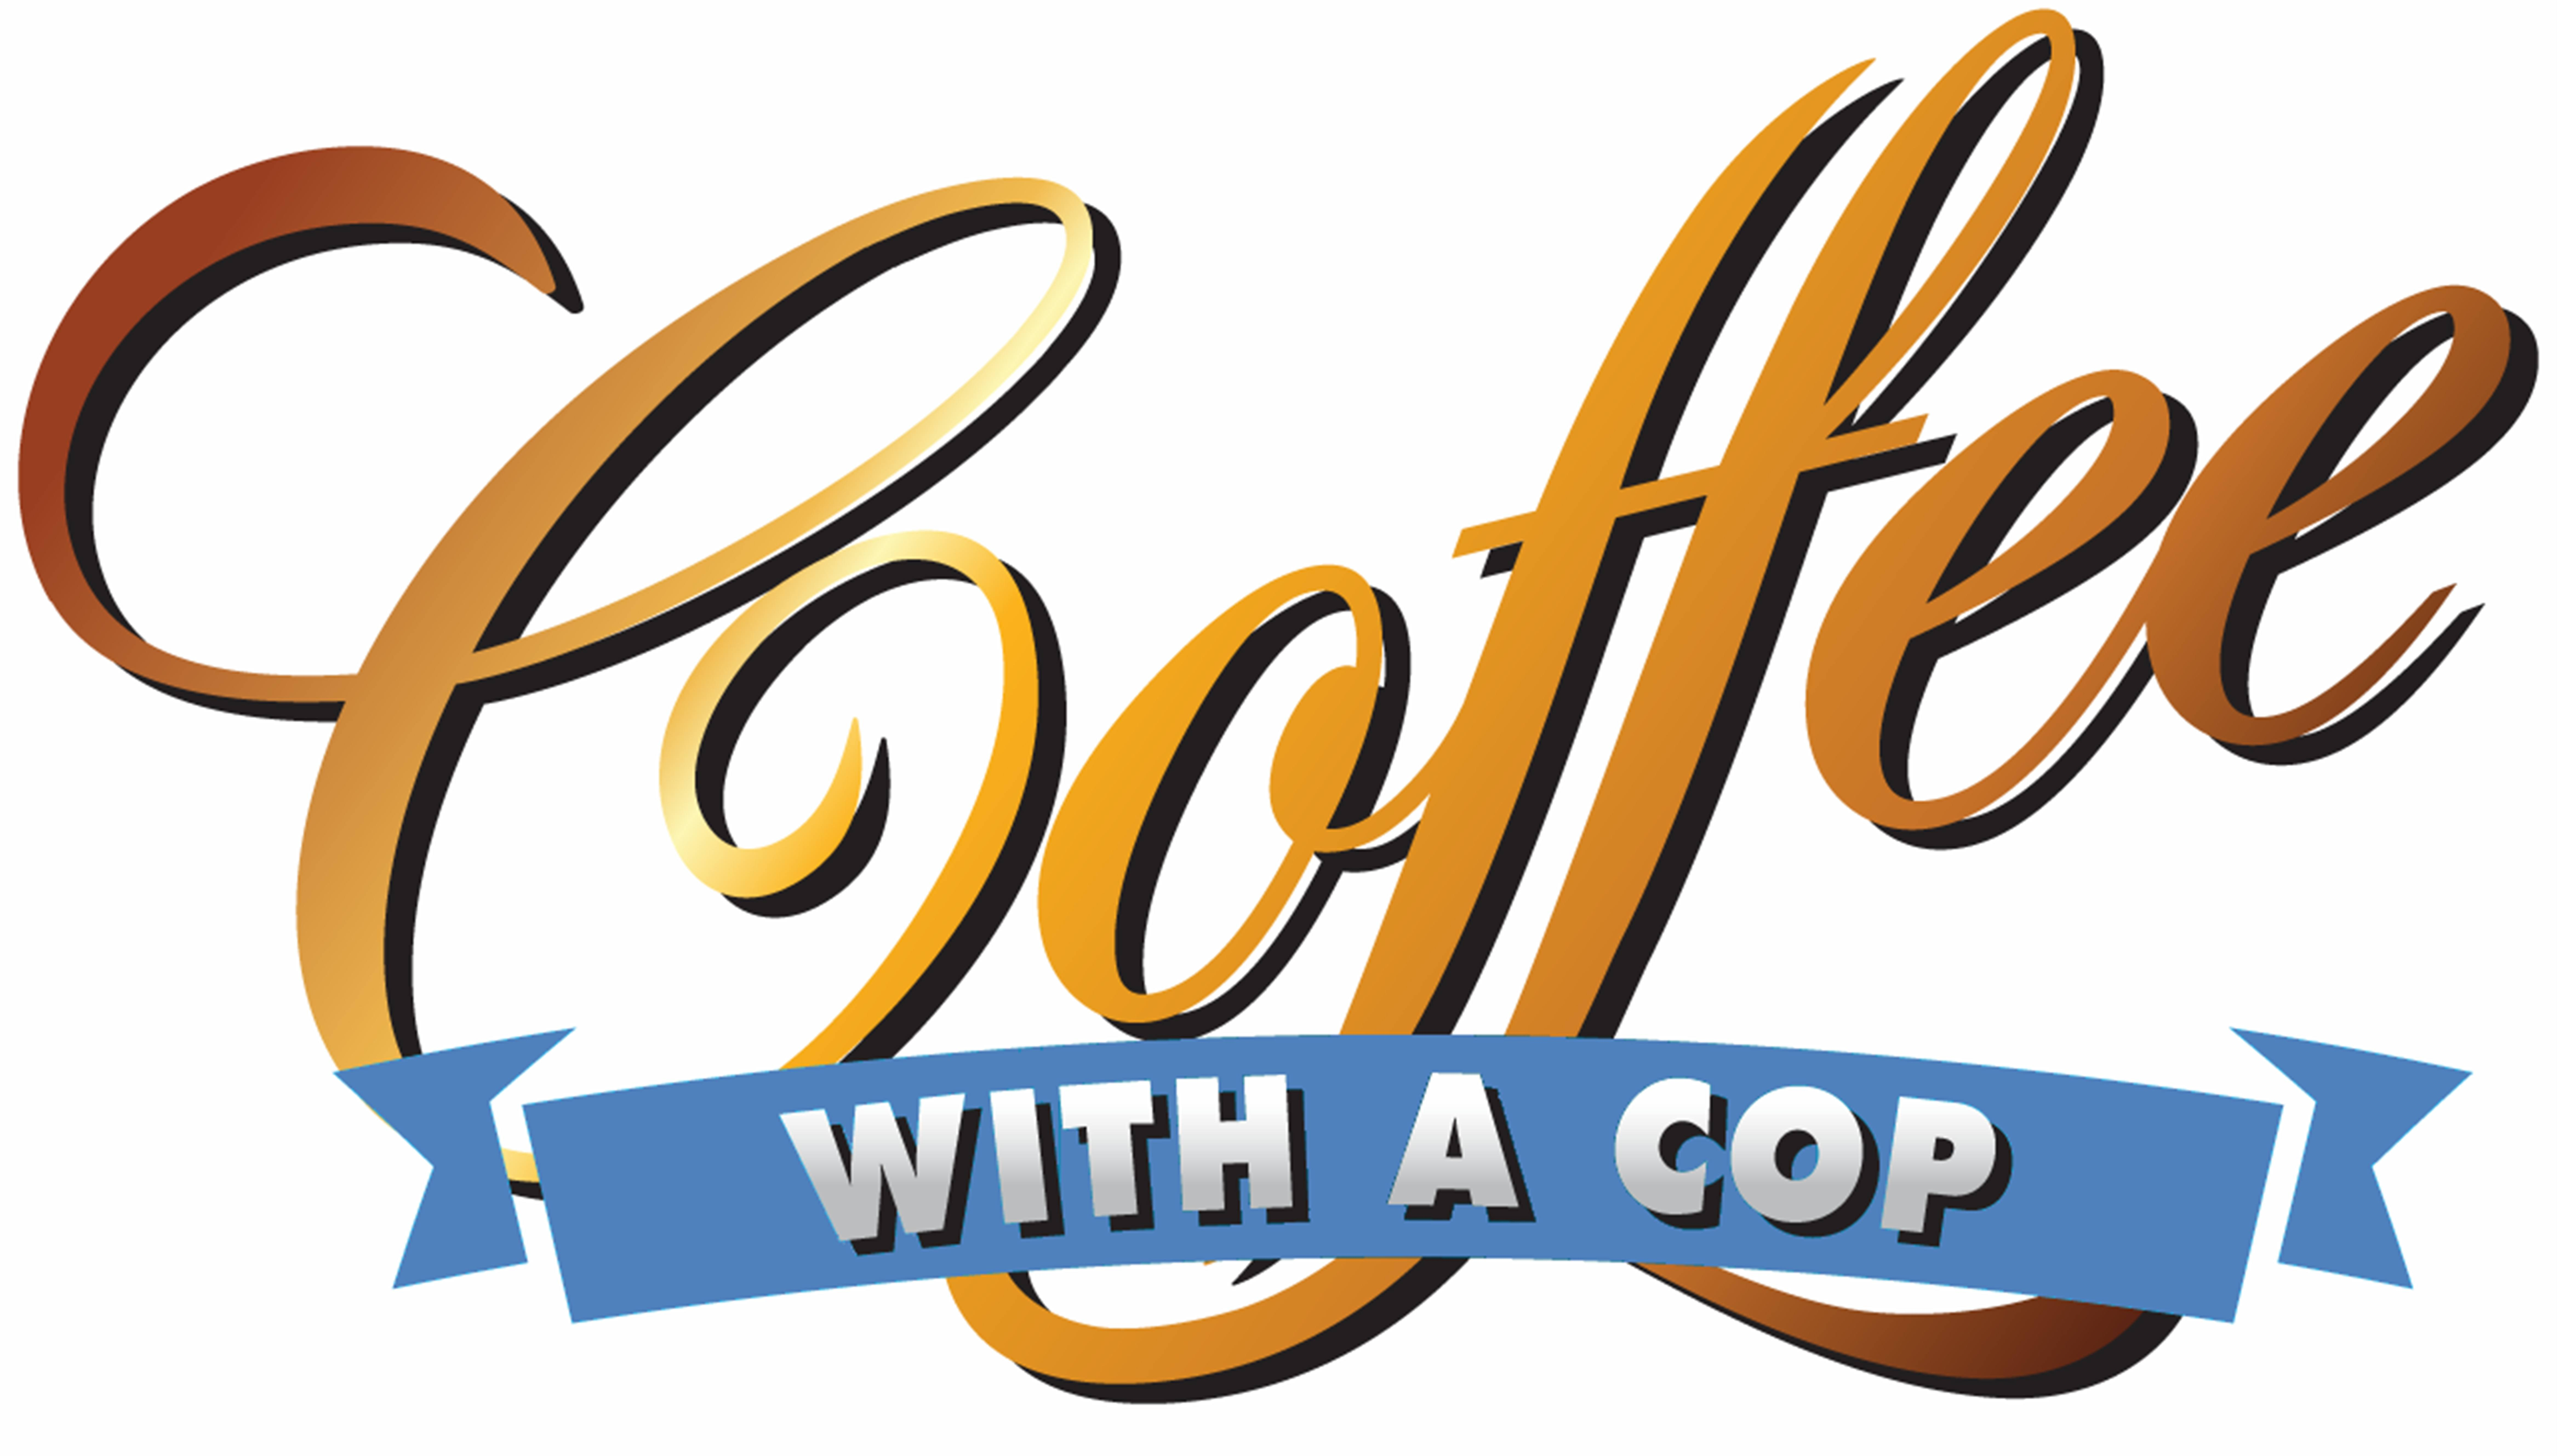 coffee with a cop logo  u00bb lakewood police department fire rescue graphic design fire department logo design software